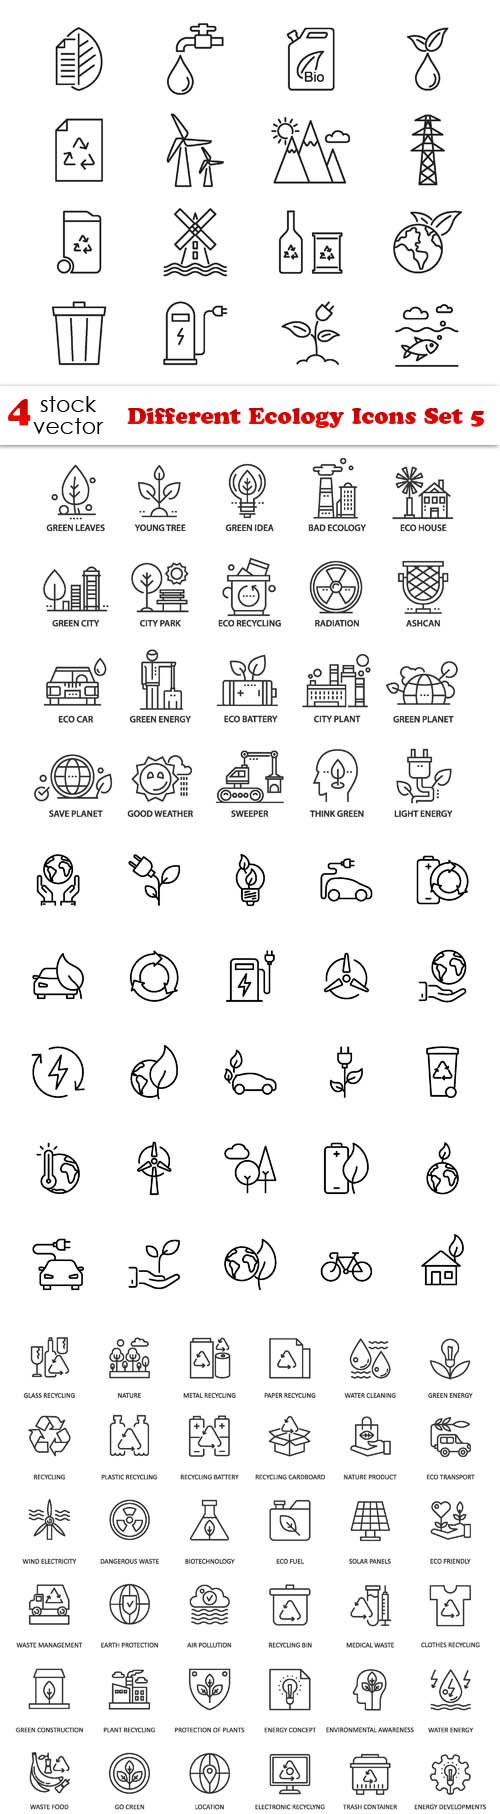 Vectors - Different Ecology Icons Set 5